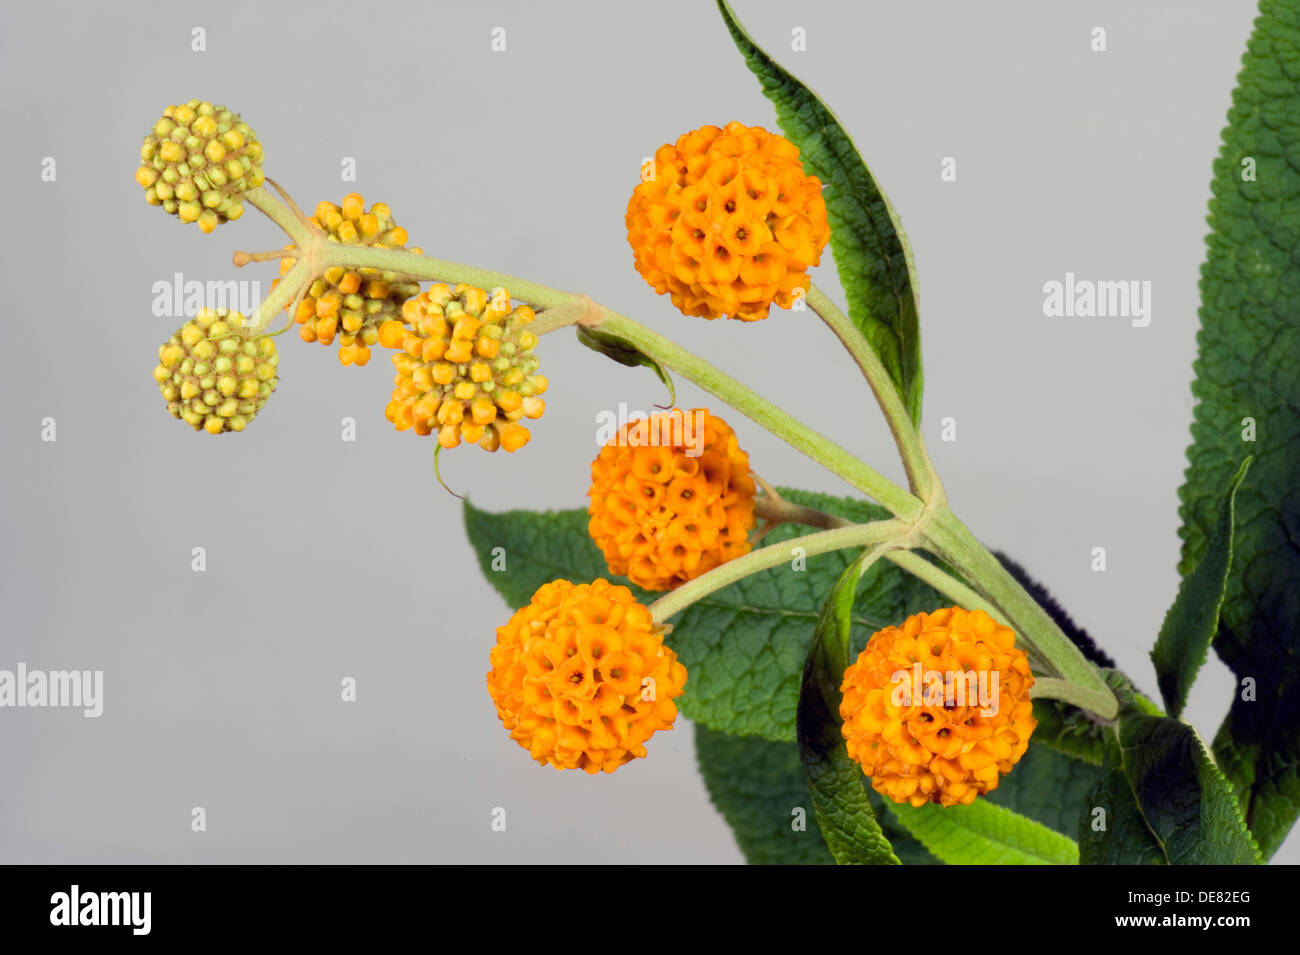 orange ball buddleja, Buddleja glabosa, large flowering shrub - Stock Image